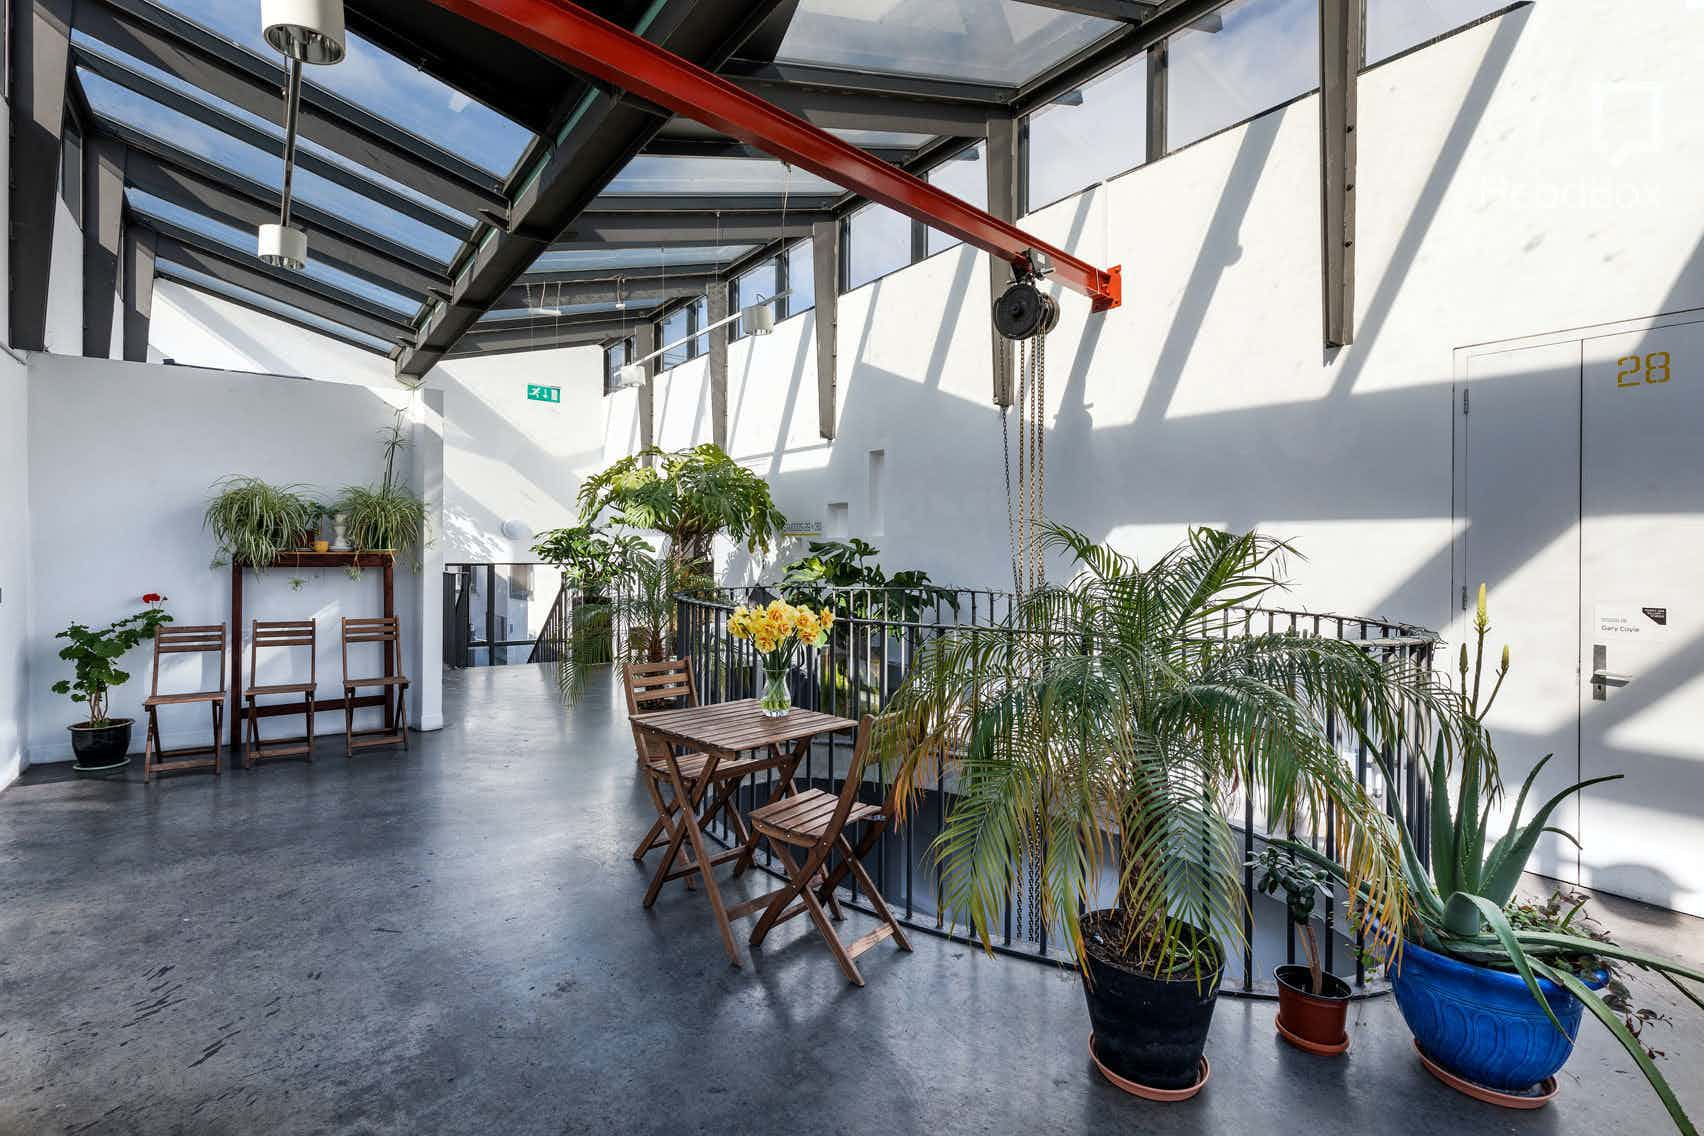 Top Floor Atrium & Balcony, Temple Bar Gallery + Studios